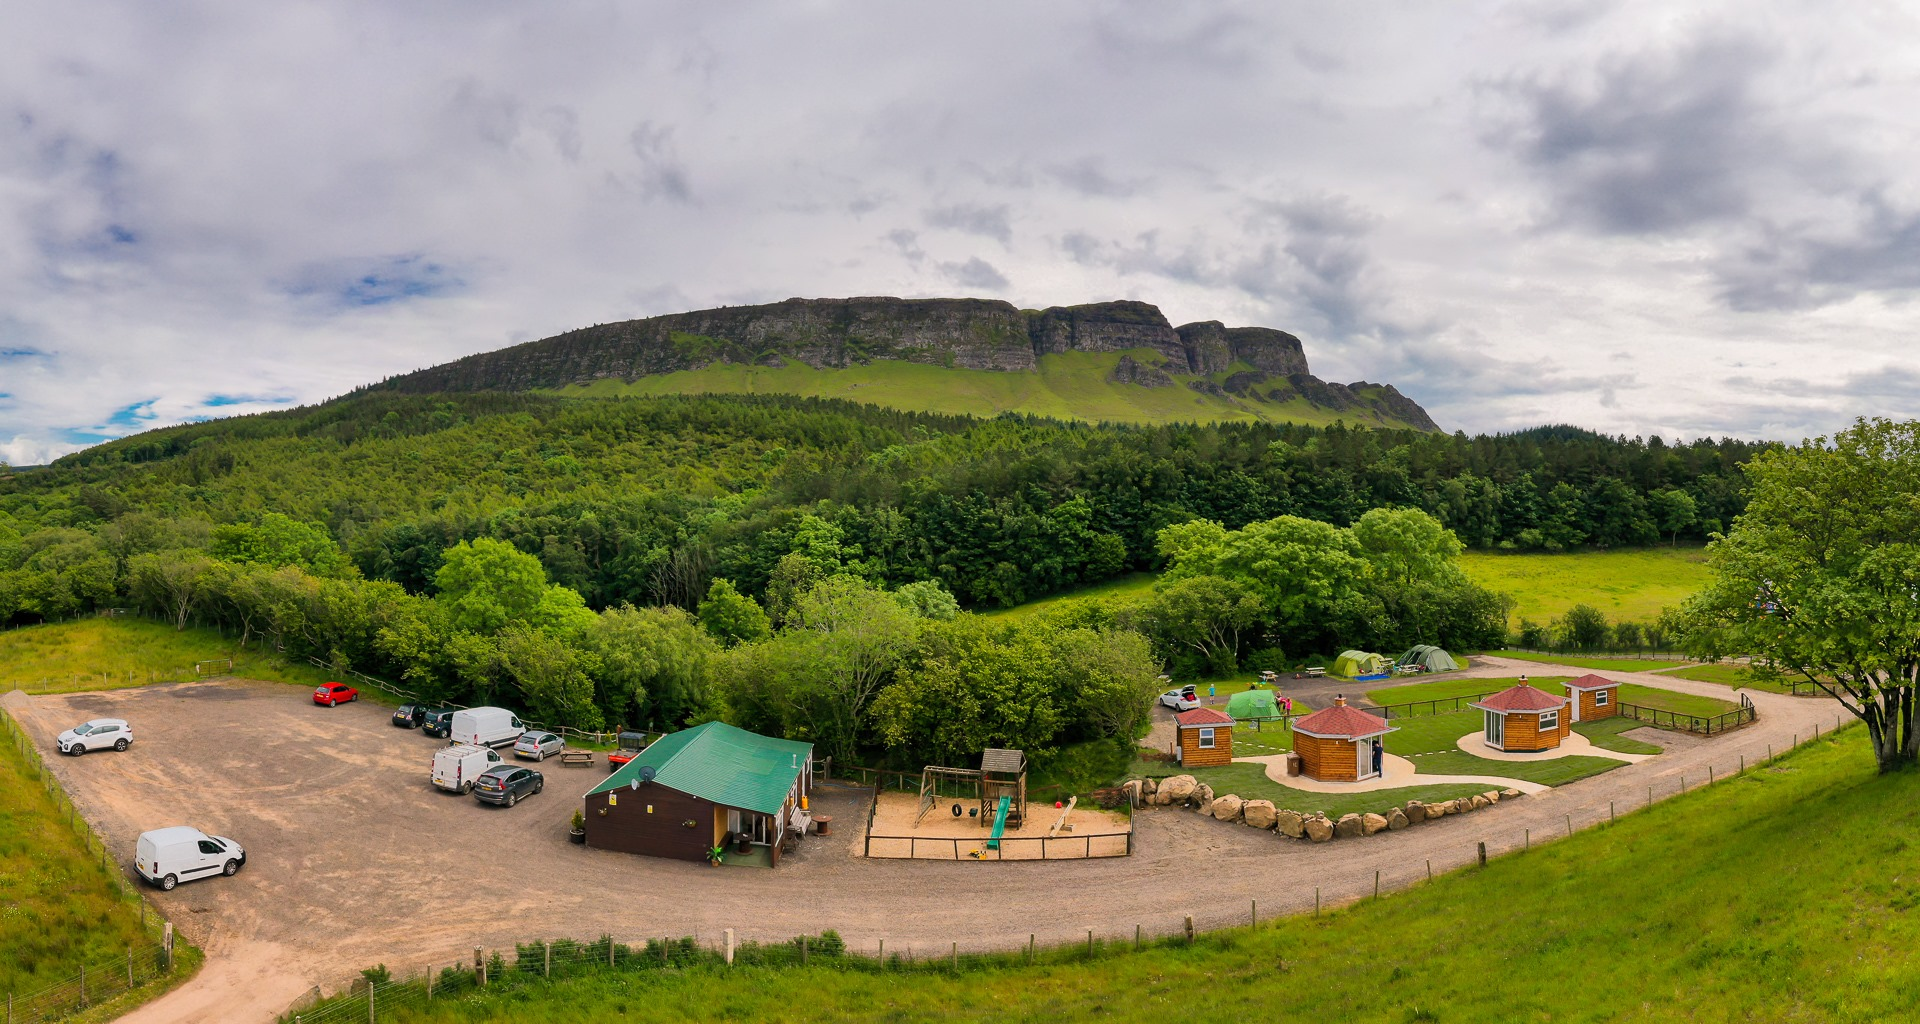 turn-around-houses-waterfall-caves-limavady-2